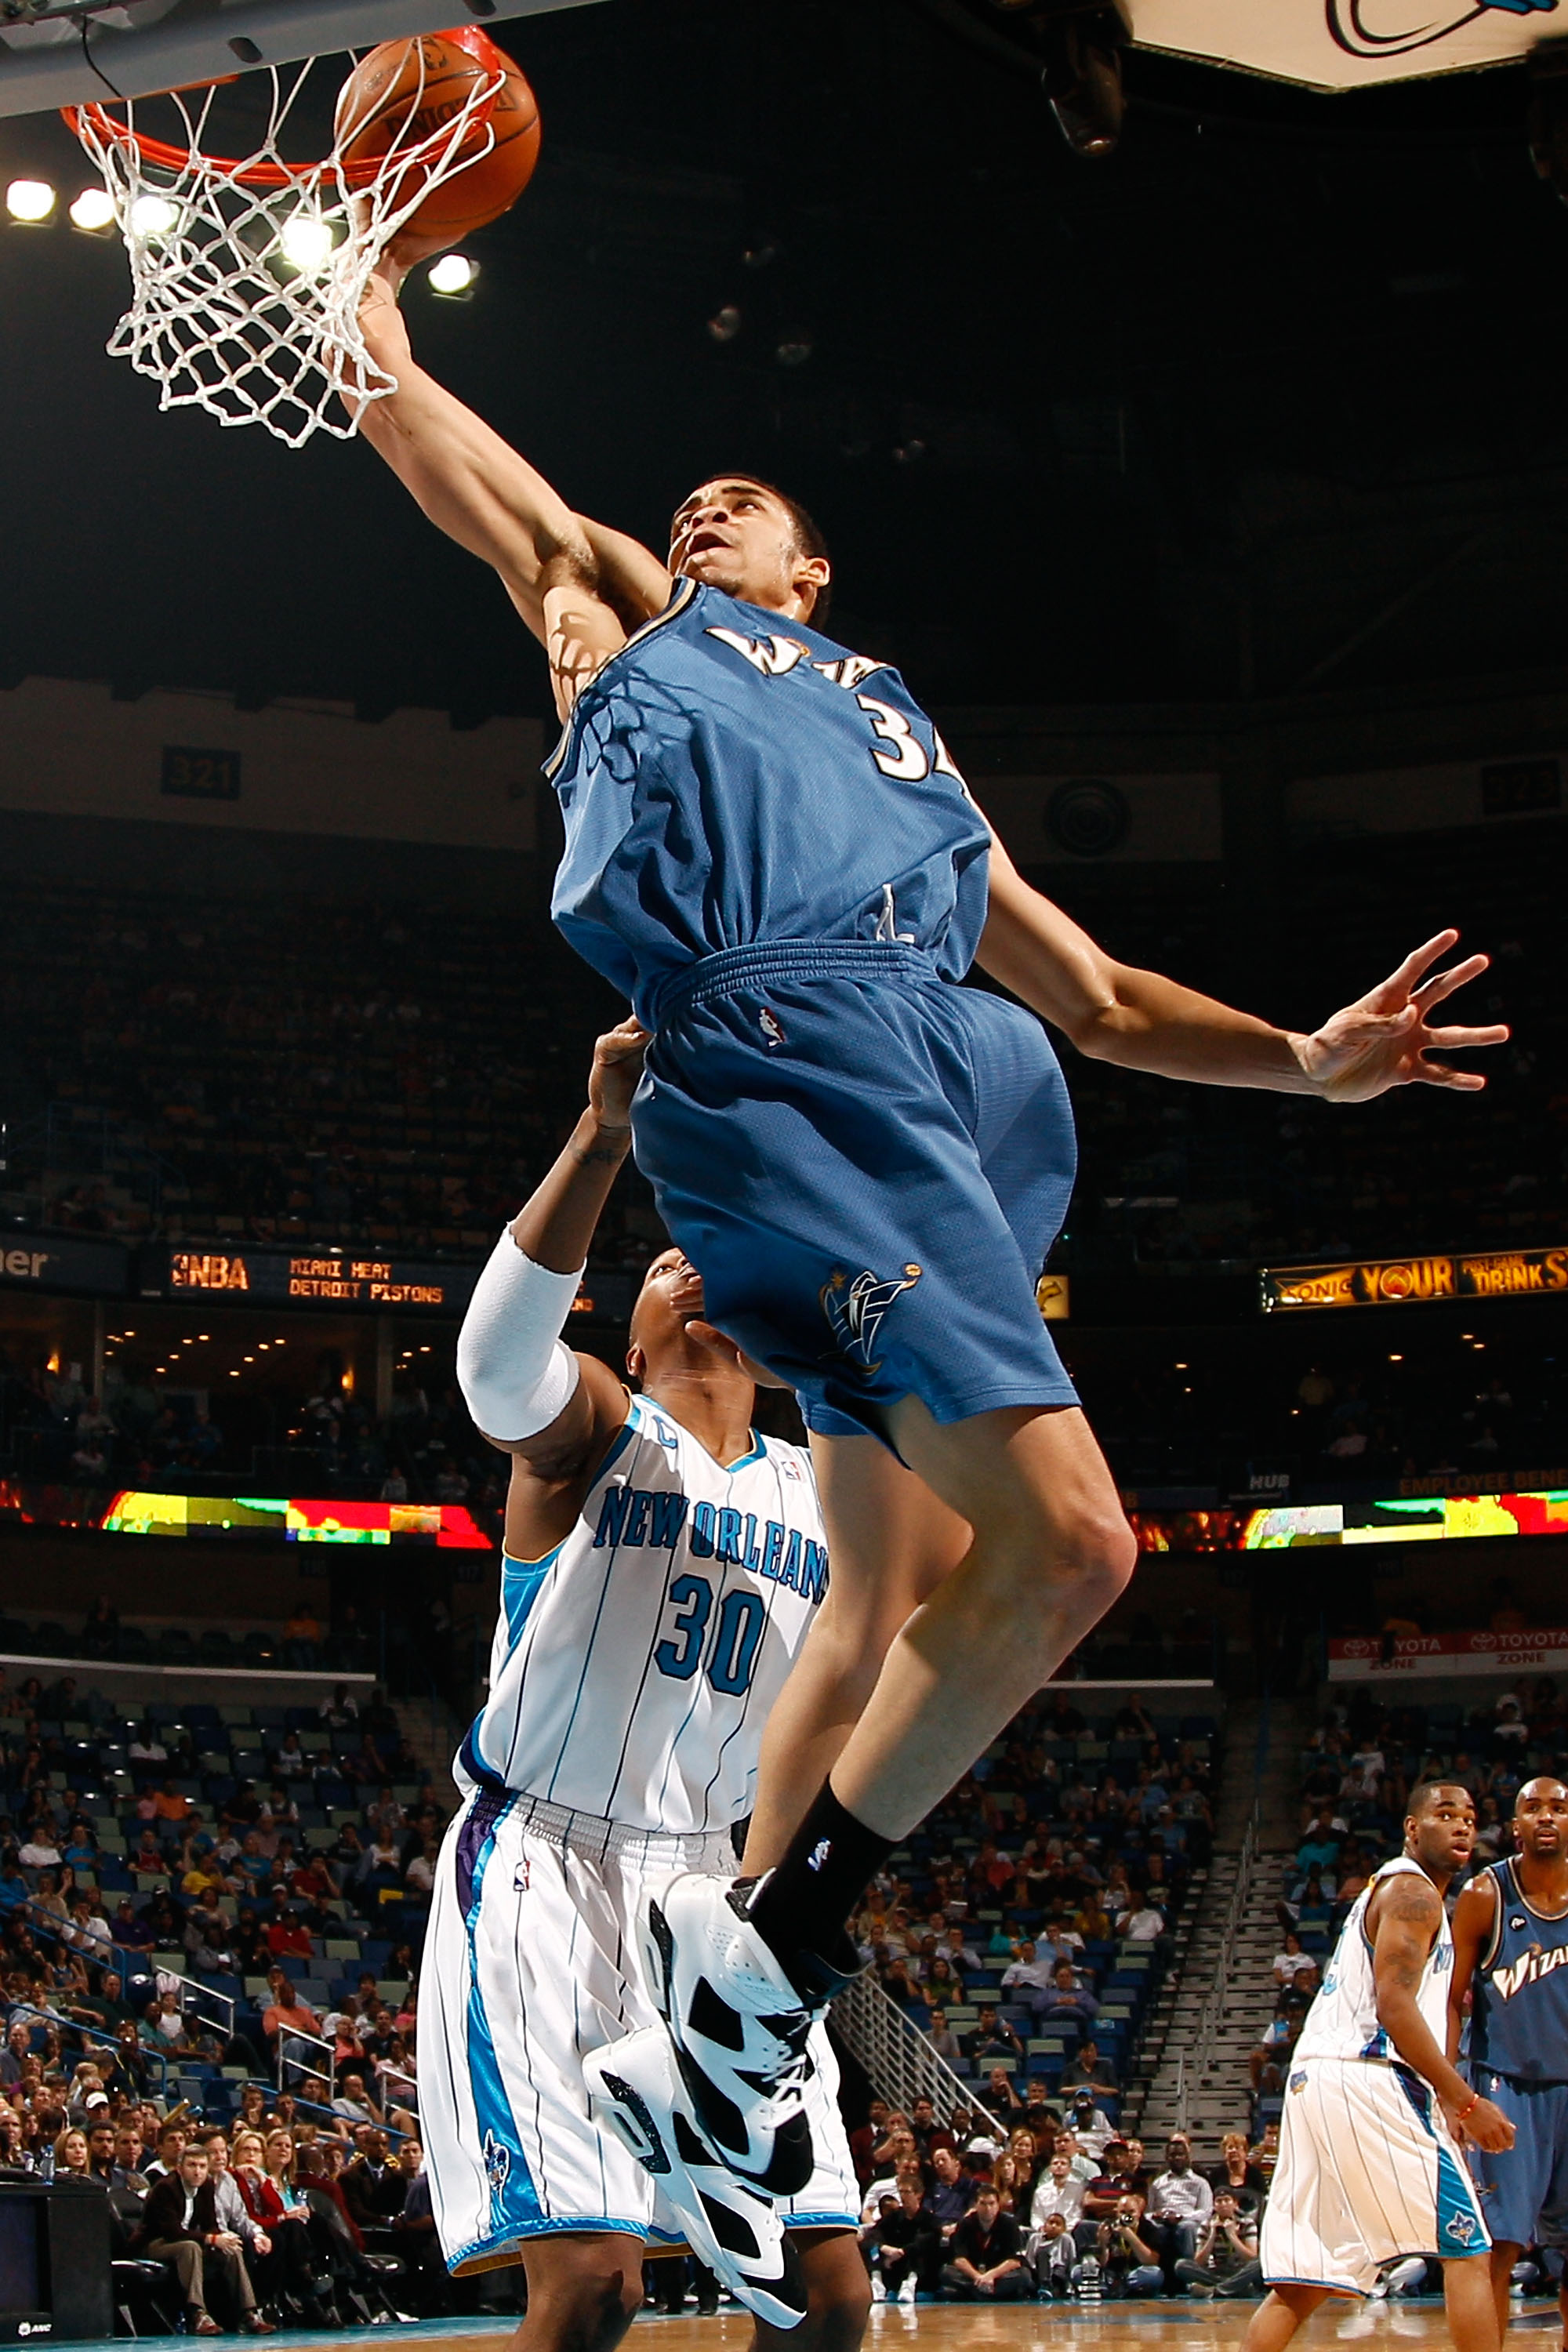 NEW ORLEANS - MARCH 31:  JaVale McGee #34 of the Washington Wizards attempts a shot over David West #30 of the New Orleans Hornets at New Orleans Arena on March 31, 2010 in New Orleans, Louisiana.  NOTE TO USER: User expressly acknowledges and agrees that